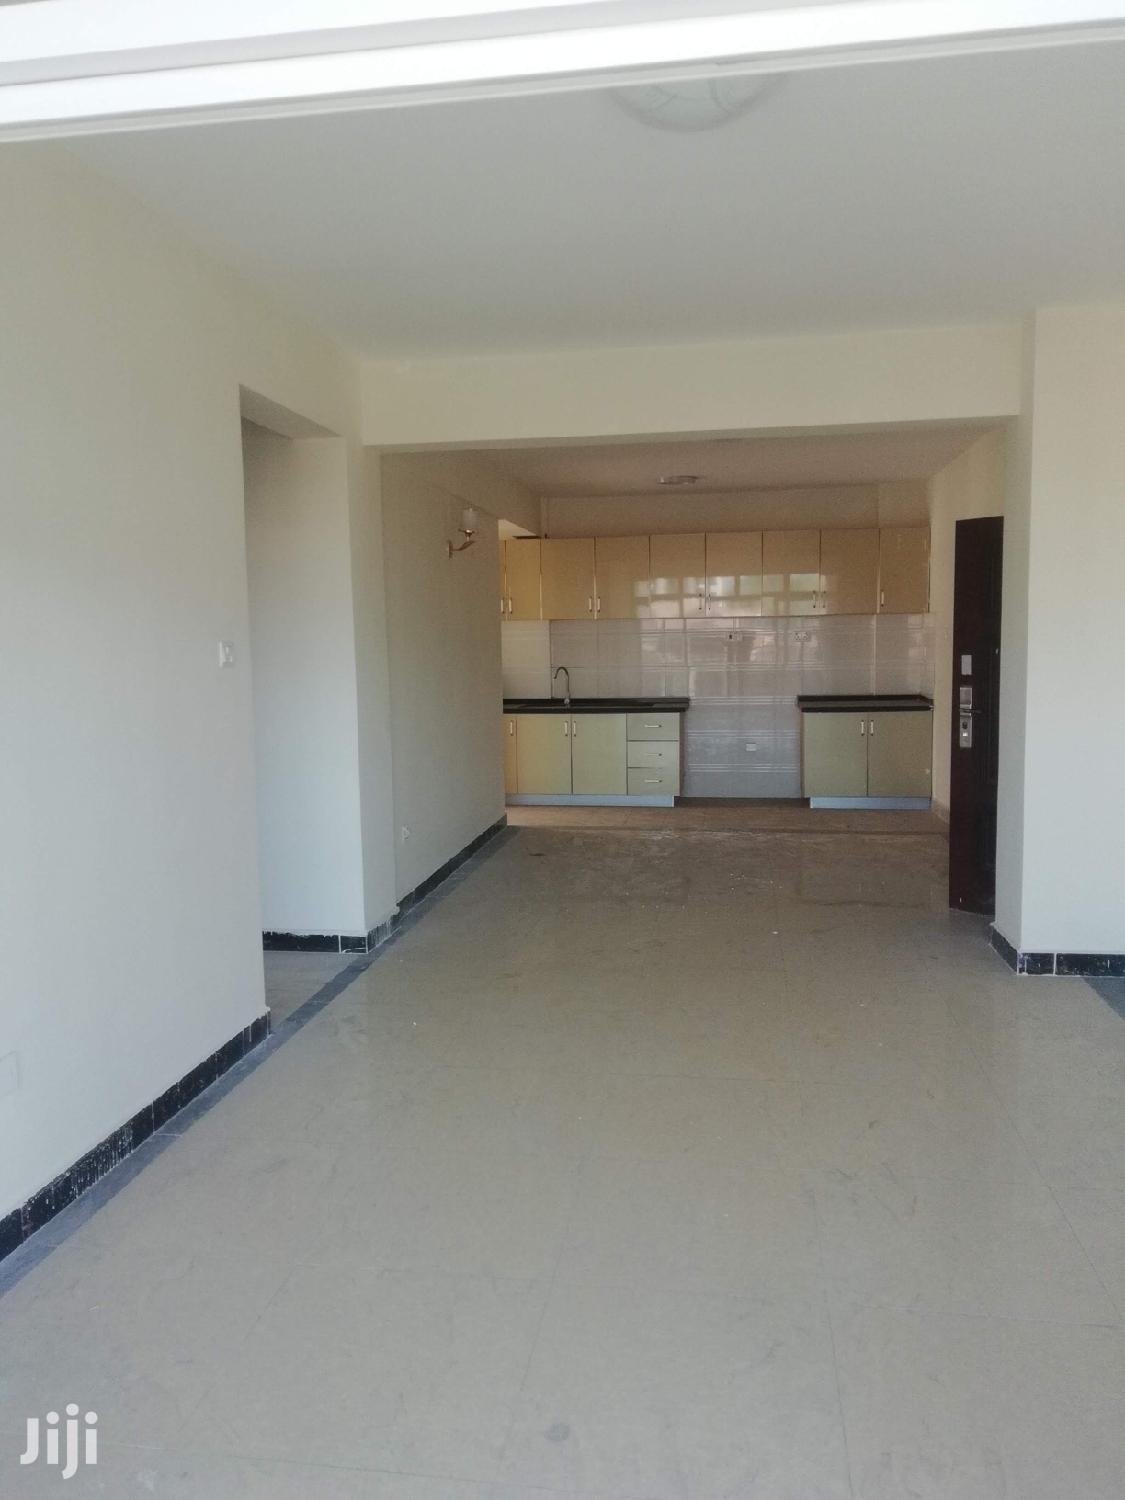 Property World;2brs Apartment With Gym,Lift Nd Very Secure | Houses & Apartments For Rent for sale in Kilimani, Nairobi, Kenya